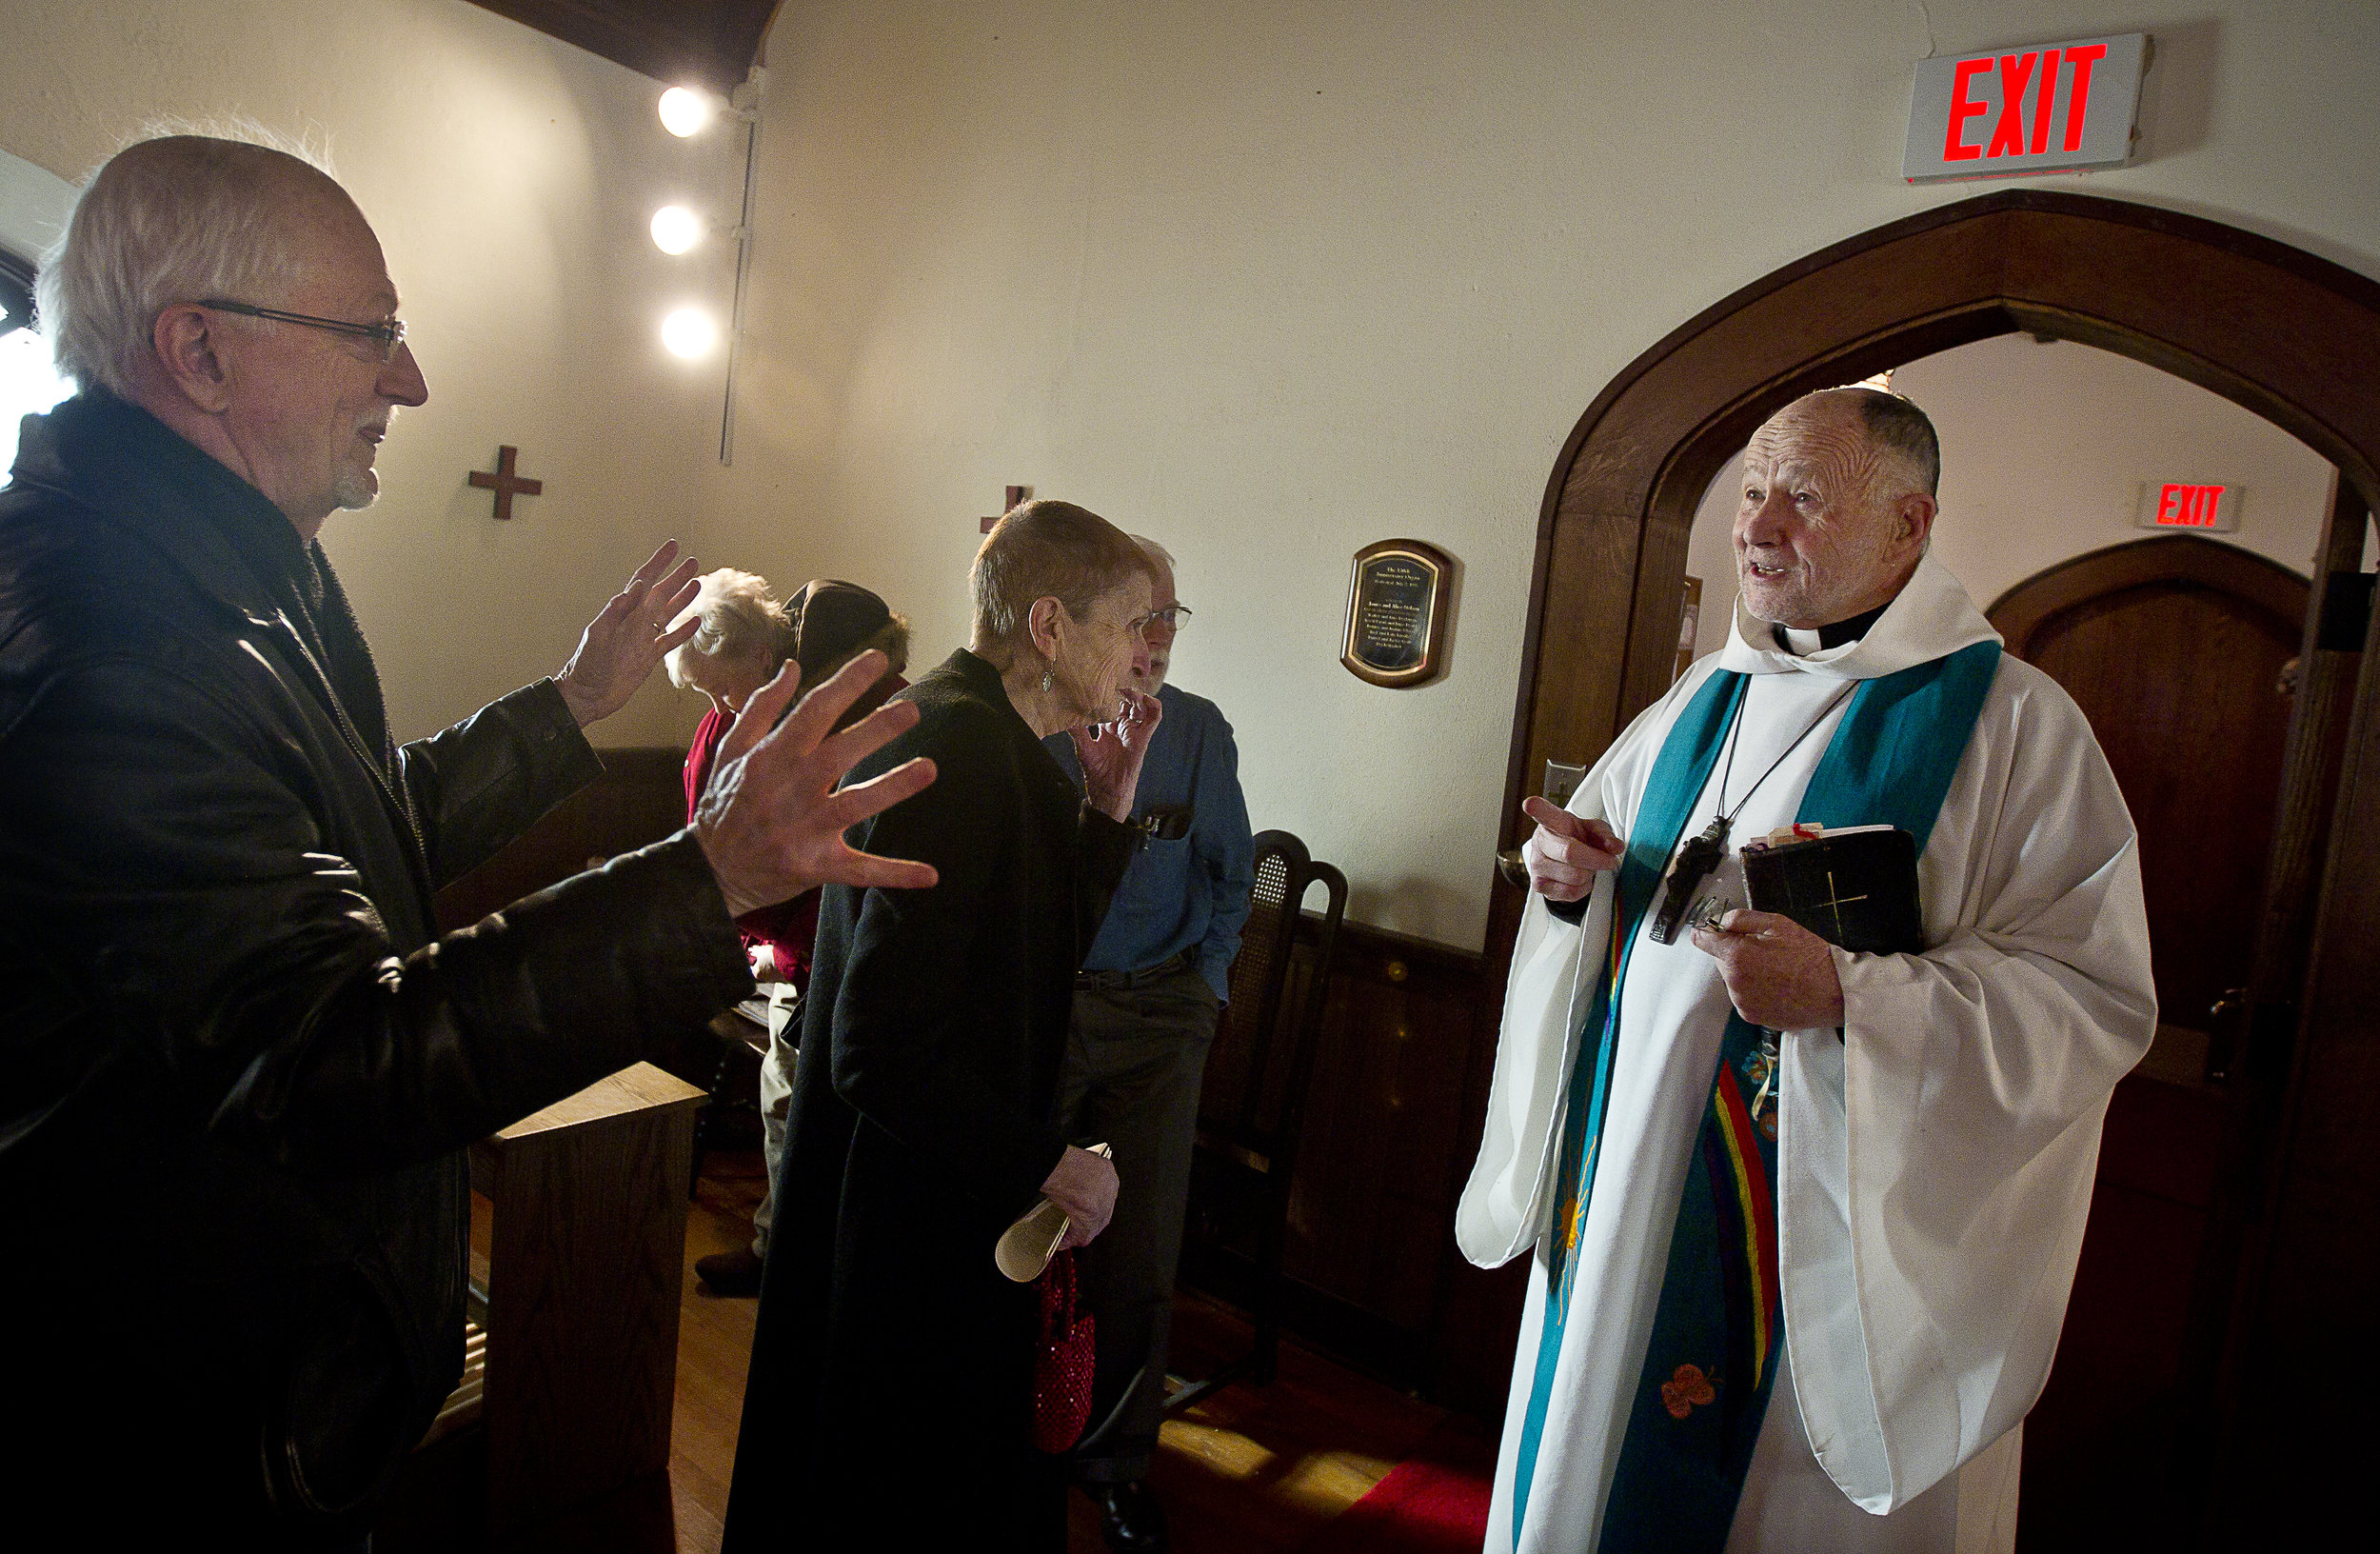 NORTH LAKE, WI — JANUARY 18, 2015: Reverend David Couper delivers the homily during during mass at St. Peter's Episcopal Church, Sunday, January 18, 2015.